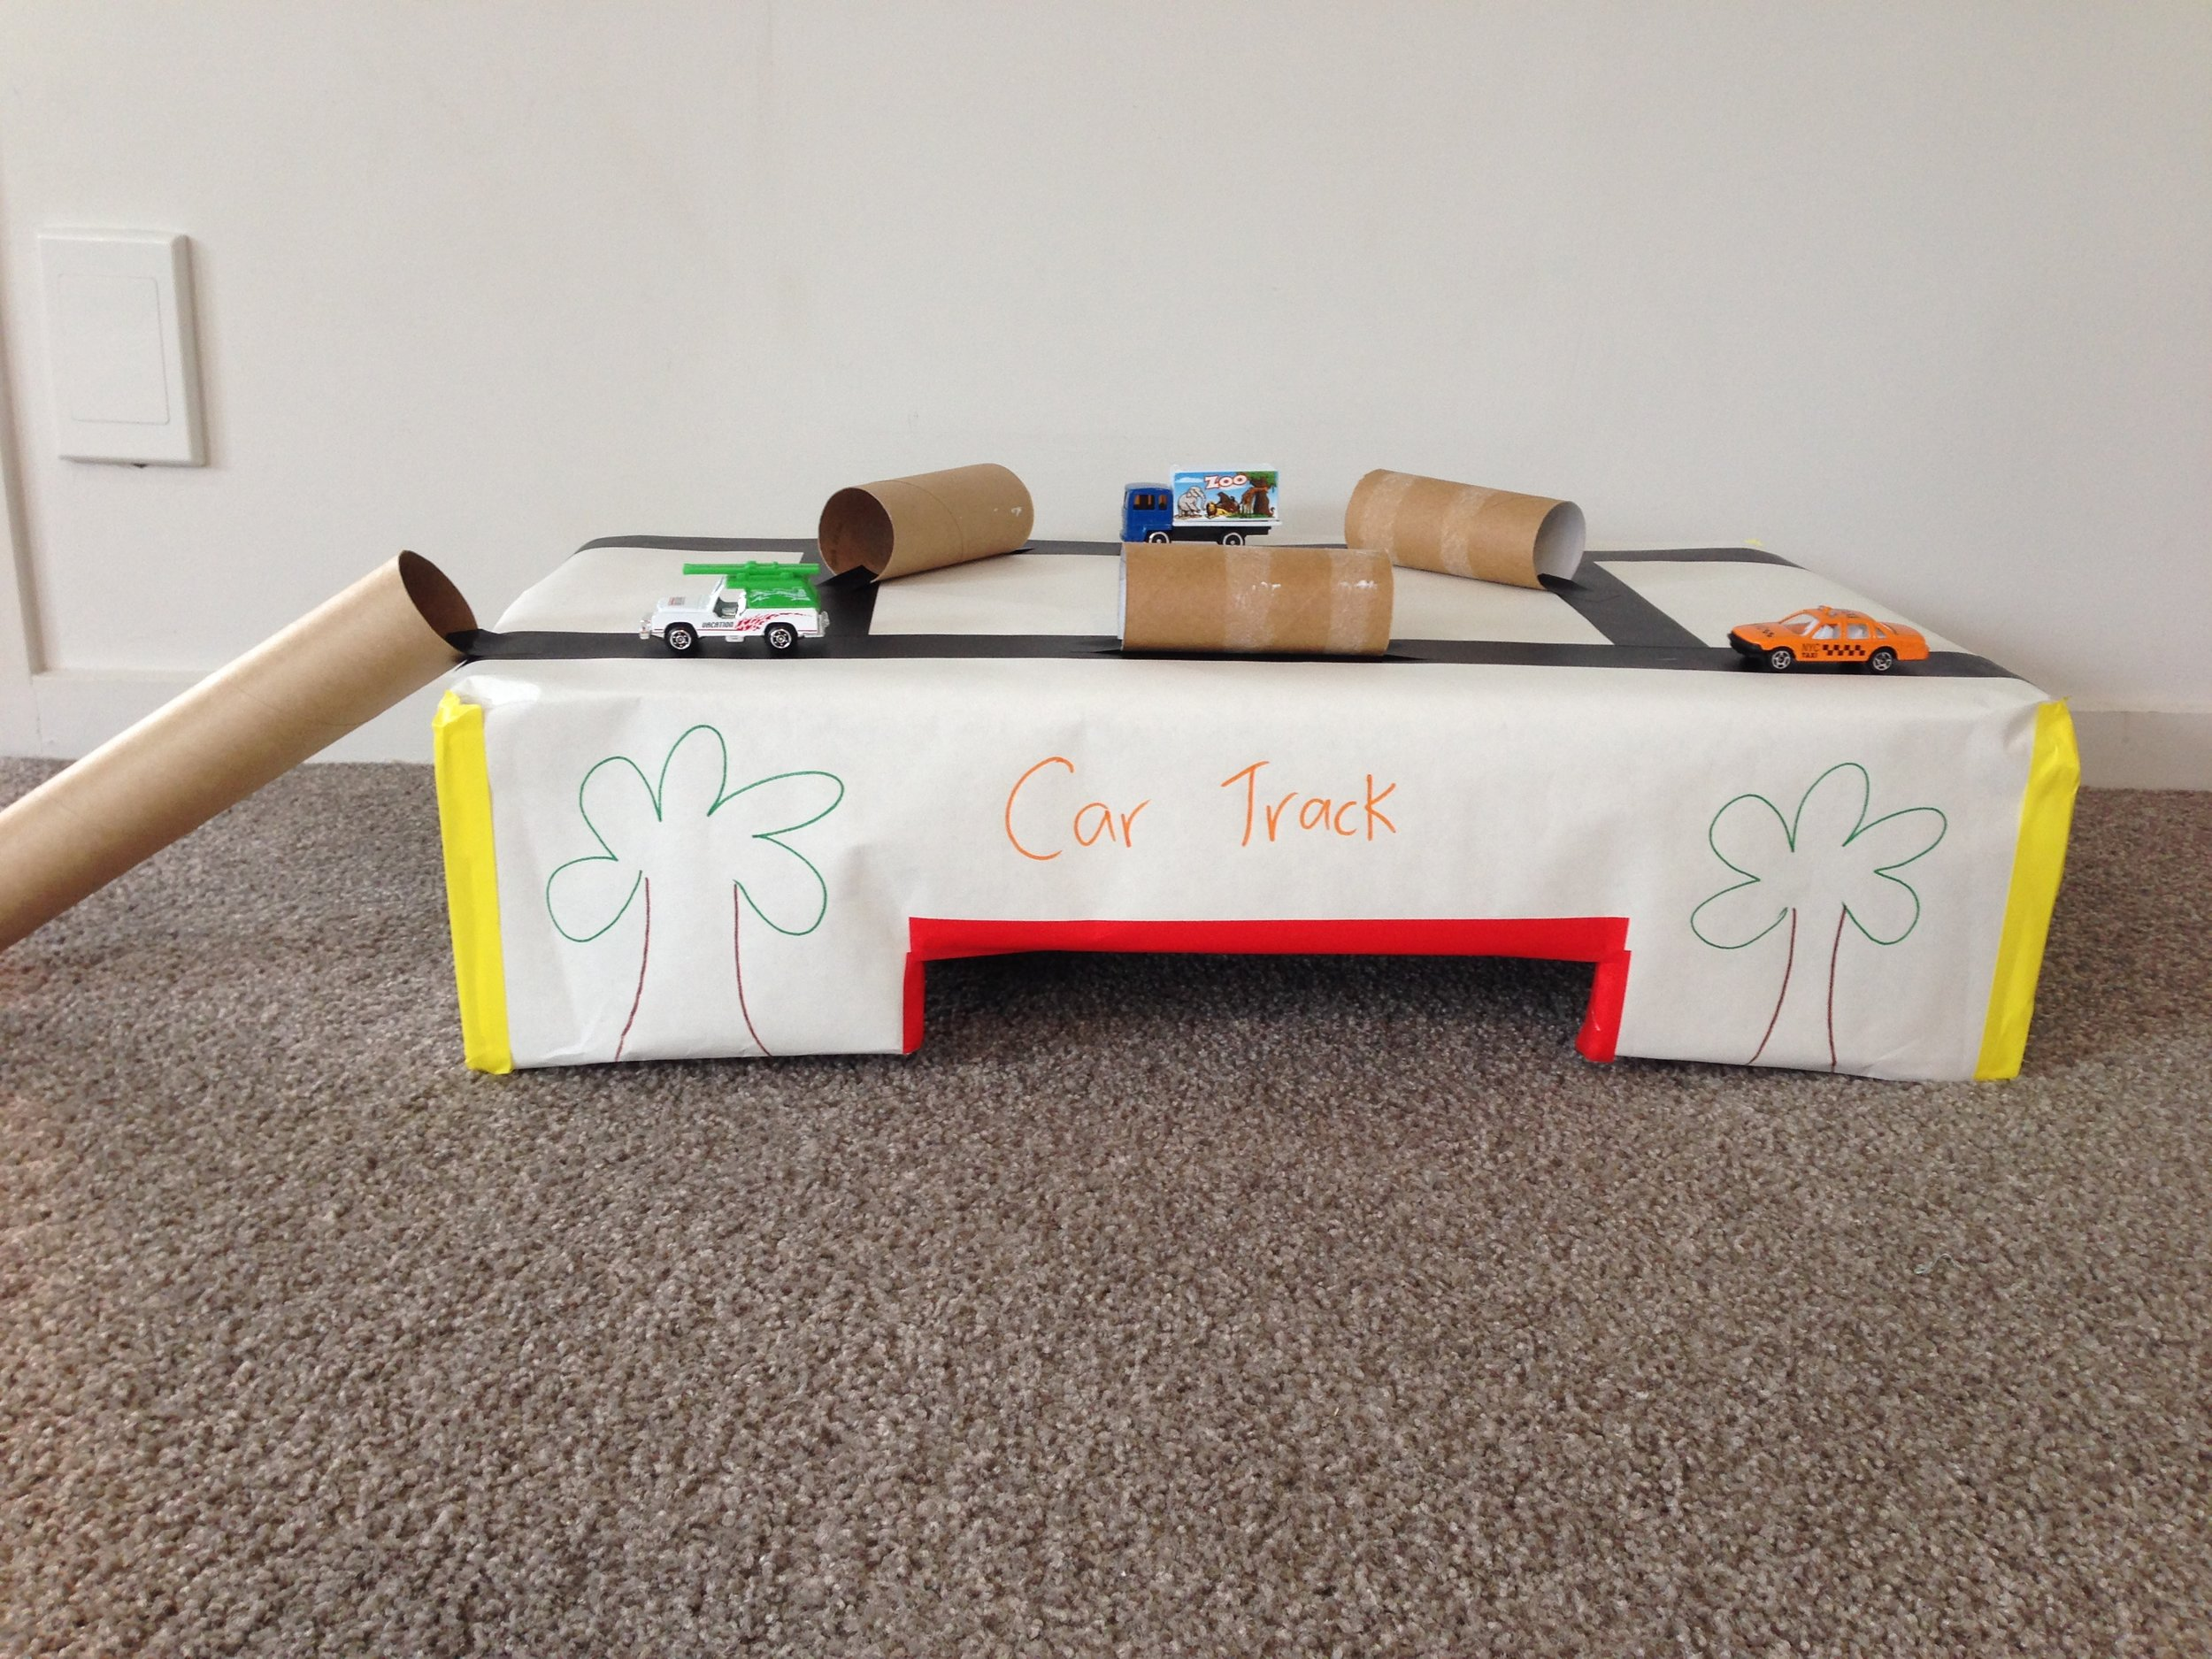 Car Track - Instructions1. Cover a cardboard box in craft paper, or leave it plain if it hasn't got any labelling on it2. Tape off pieces of road using black tape3. Cellotape or glue toilet paper rolls on the roads for tunnels4. Cellotape or glue a handi towel roll onto one end as a long tunnel or ramp5. Cut tunnels in the bottom of the box for the cars to go under aswell